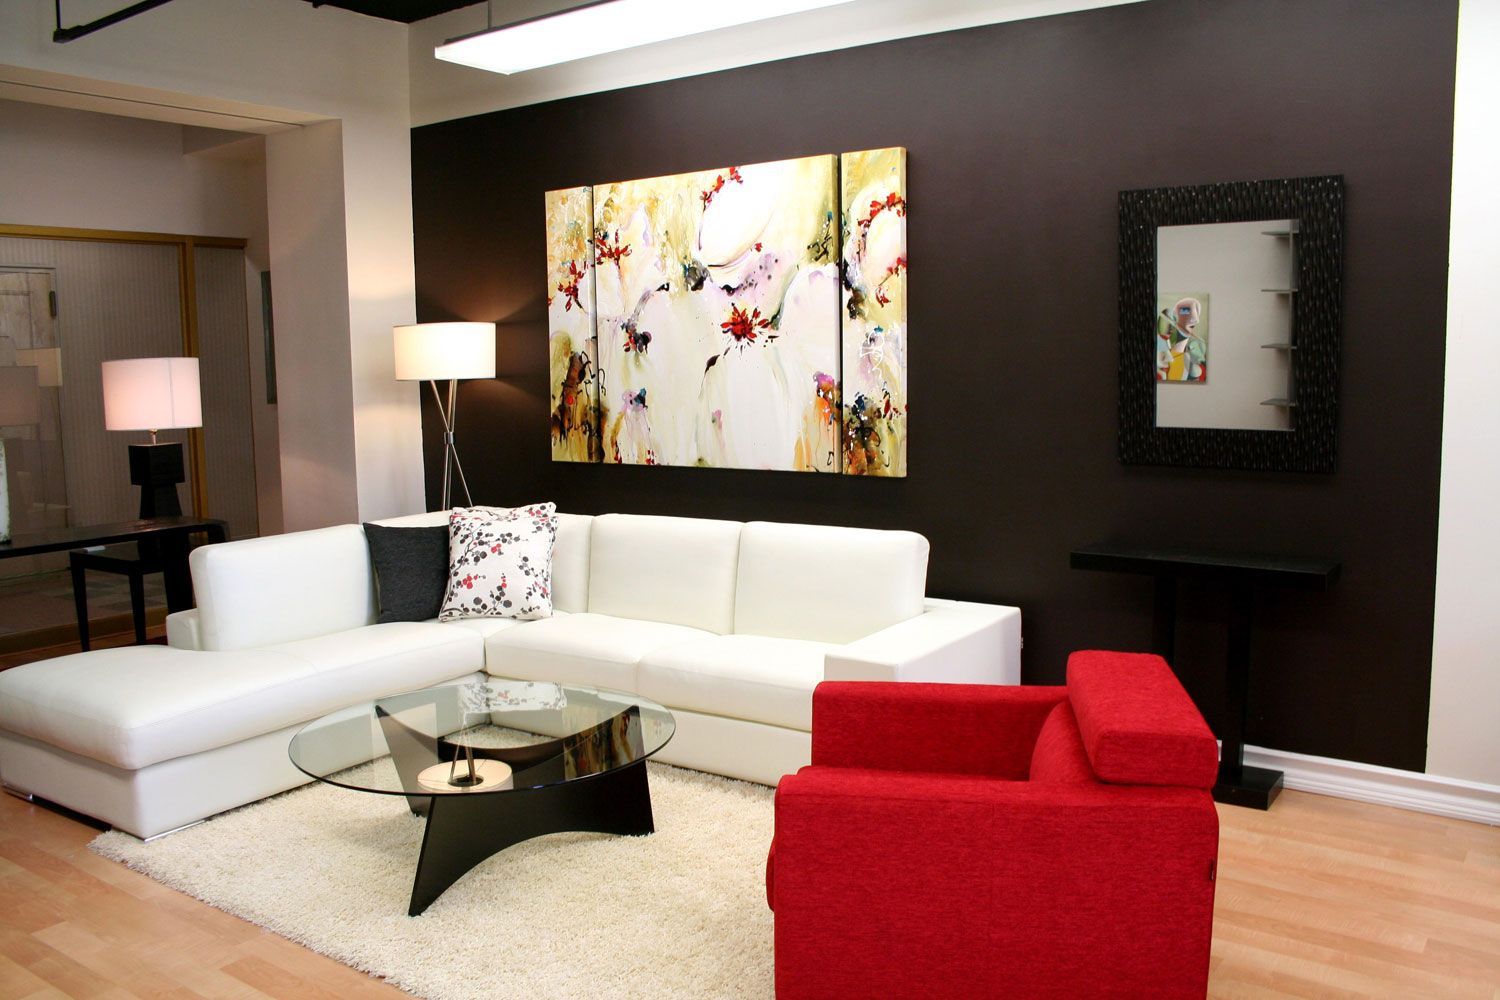 Modern living room wall decorations - Explore Living Room Walls Living Room Ideas And More